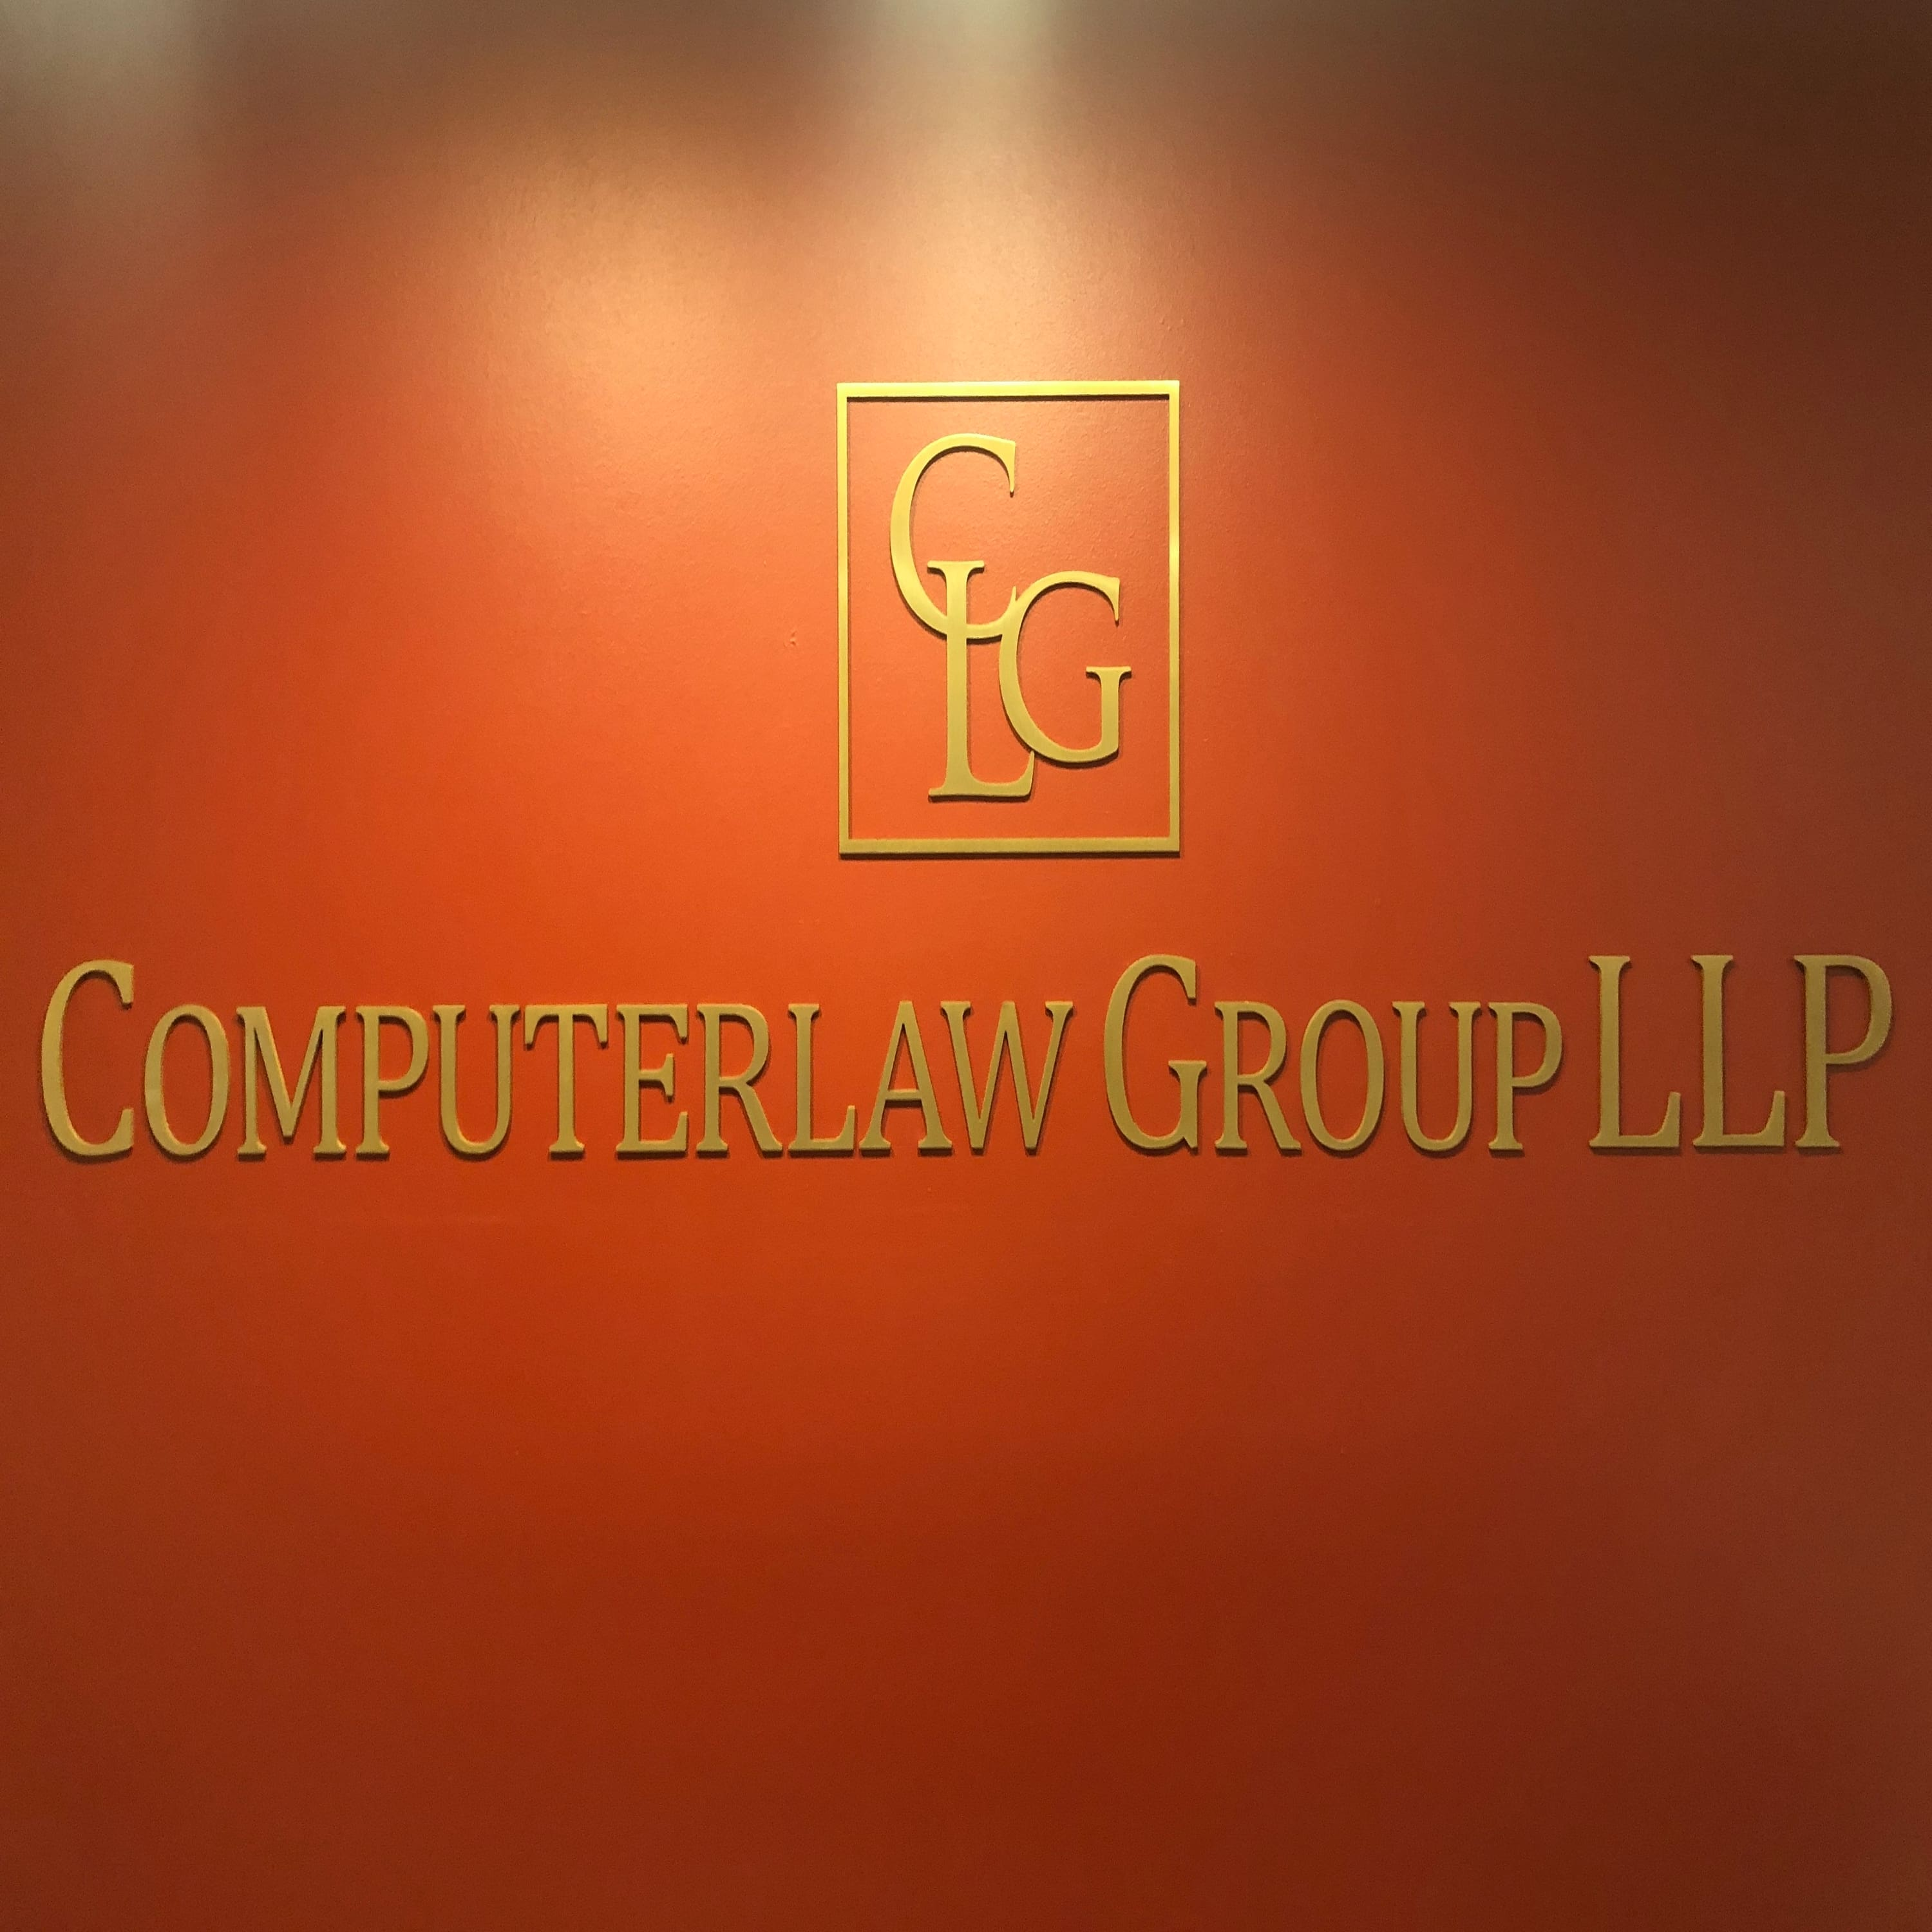 THE VALLEY CURRENT®️ COMPUTERLAW GROUP LLP show art